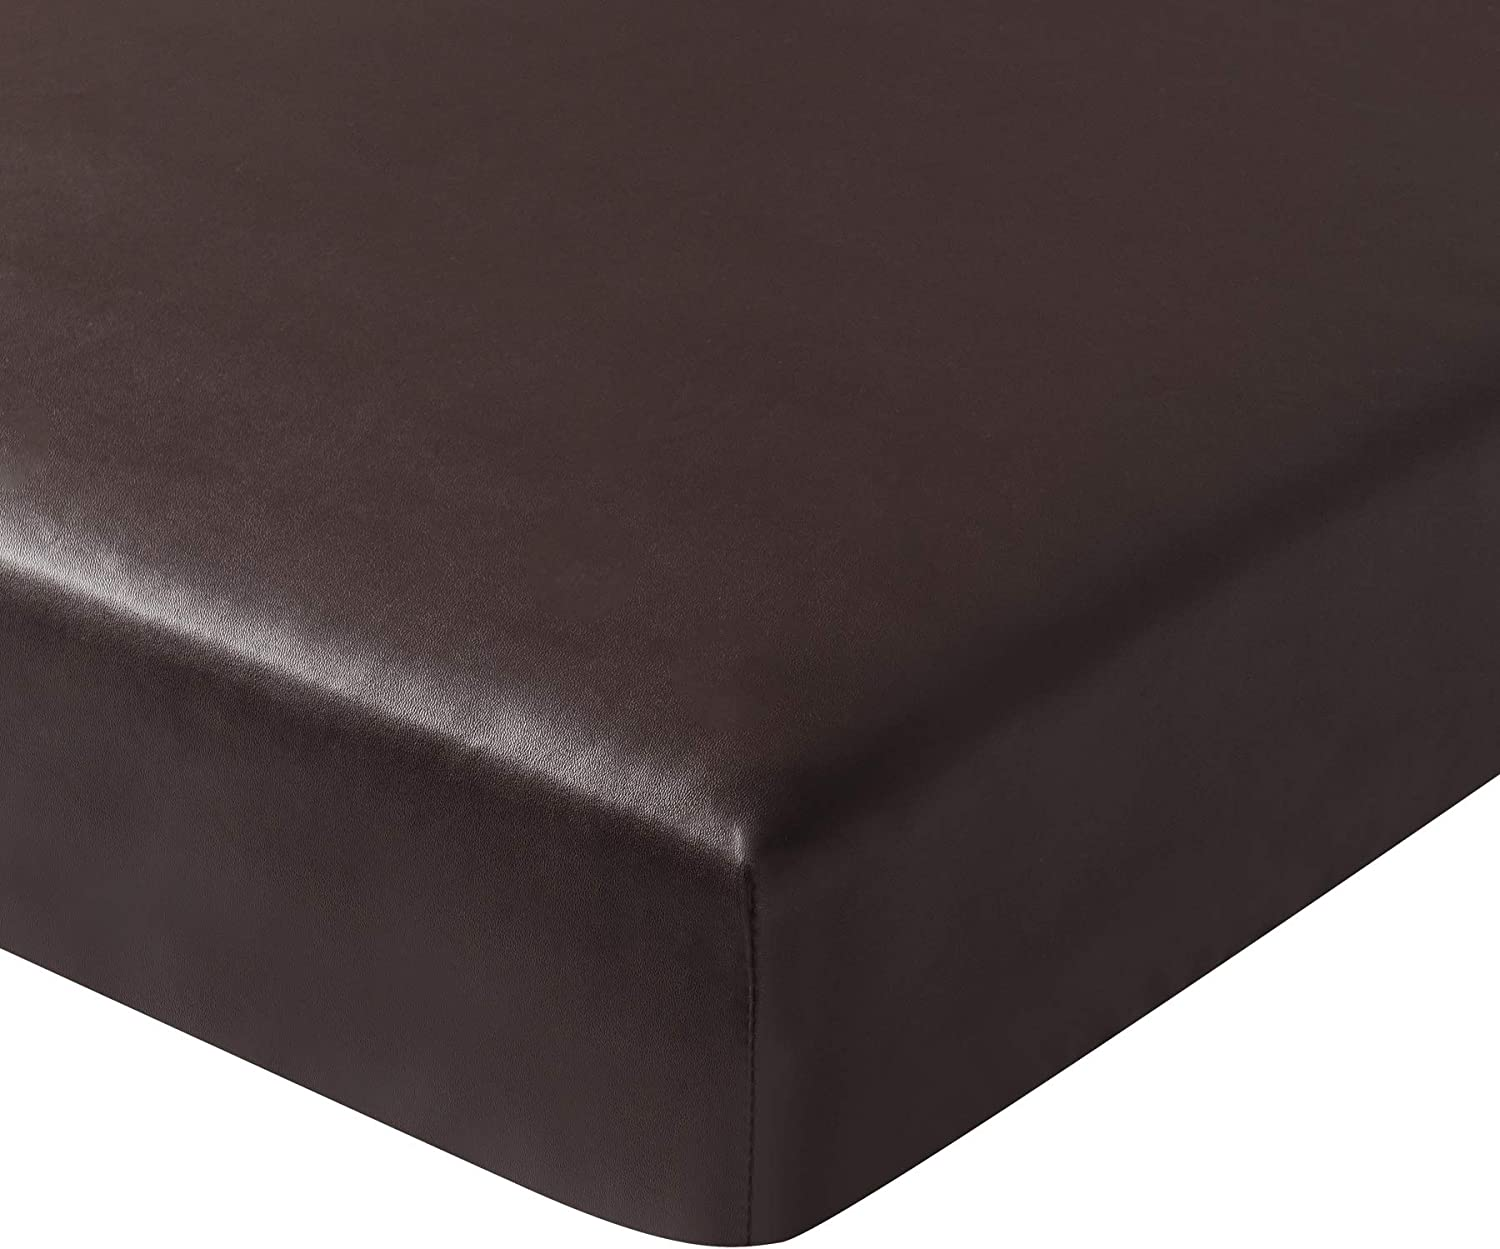 Subrtex Spandex Elastic PU Leather Couch Stretch Water-Proof Patio Durable Chair Slipcovers Furniture Protector Slip Cover for Settee Sofa Seat for Replacement (Chair Cushion, Chocolate Leather)